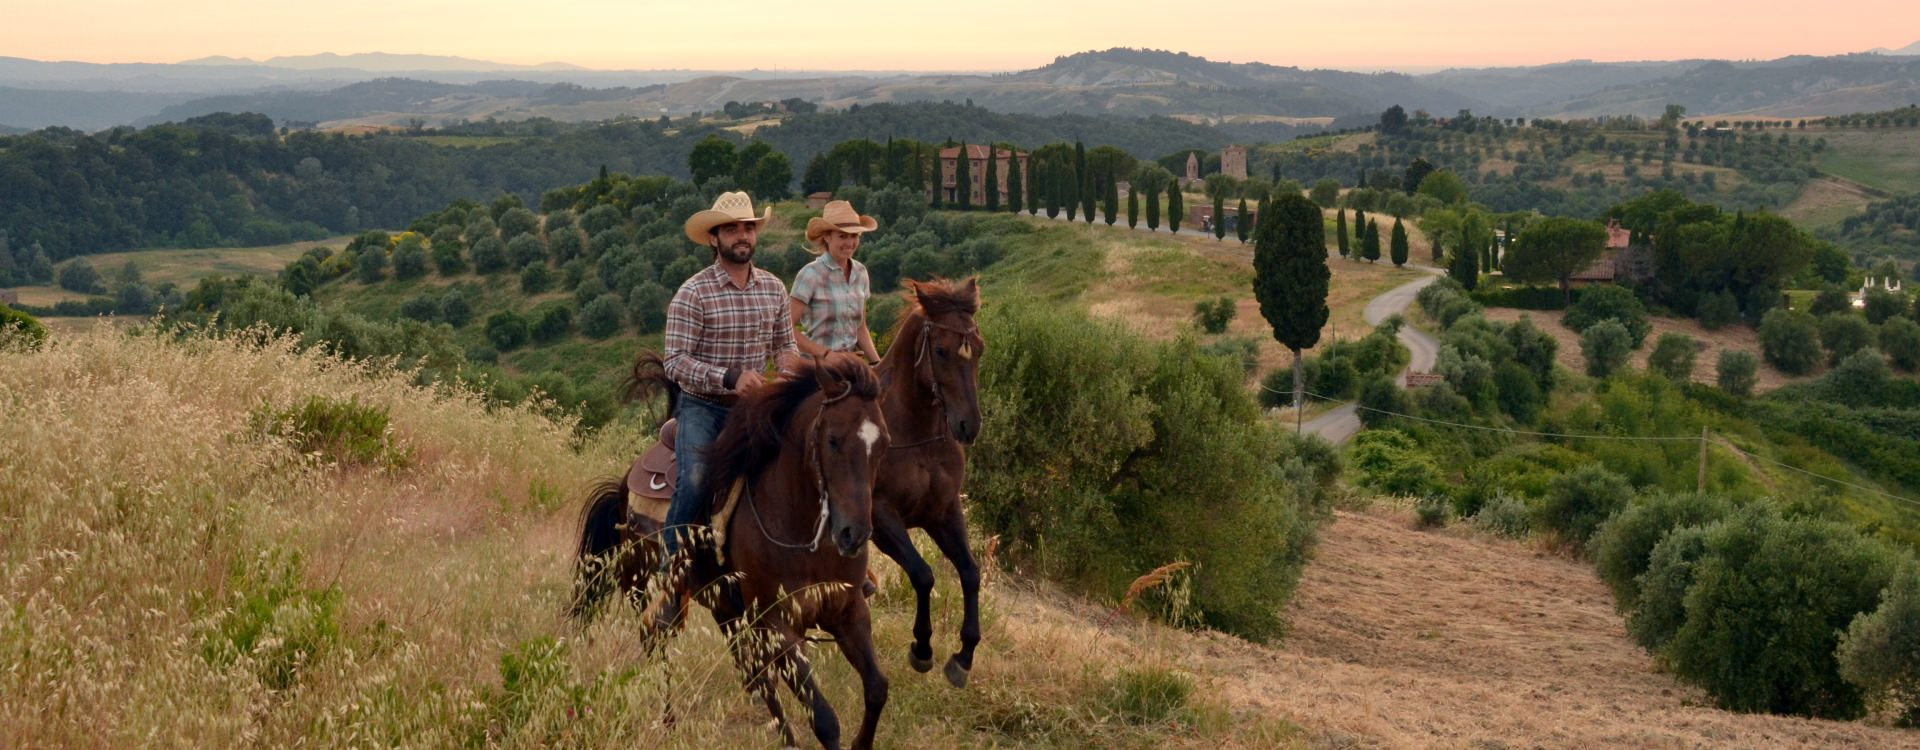 Exploring Tuscany on horseback